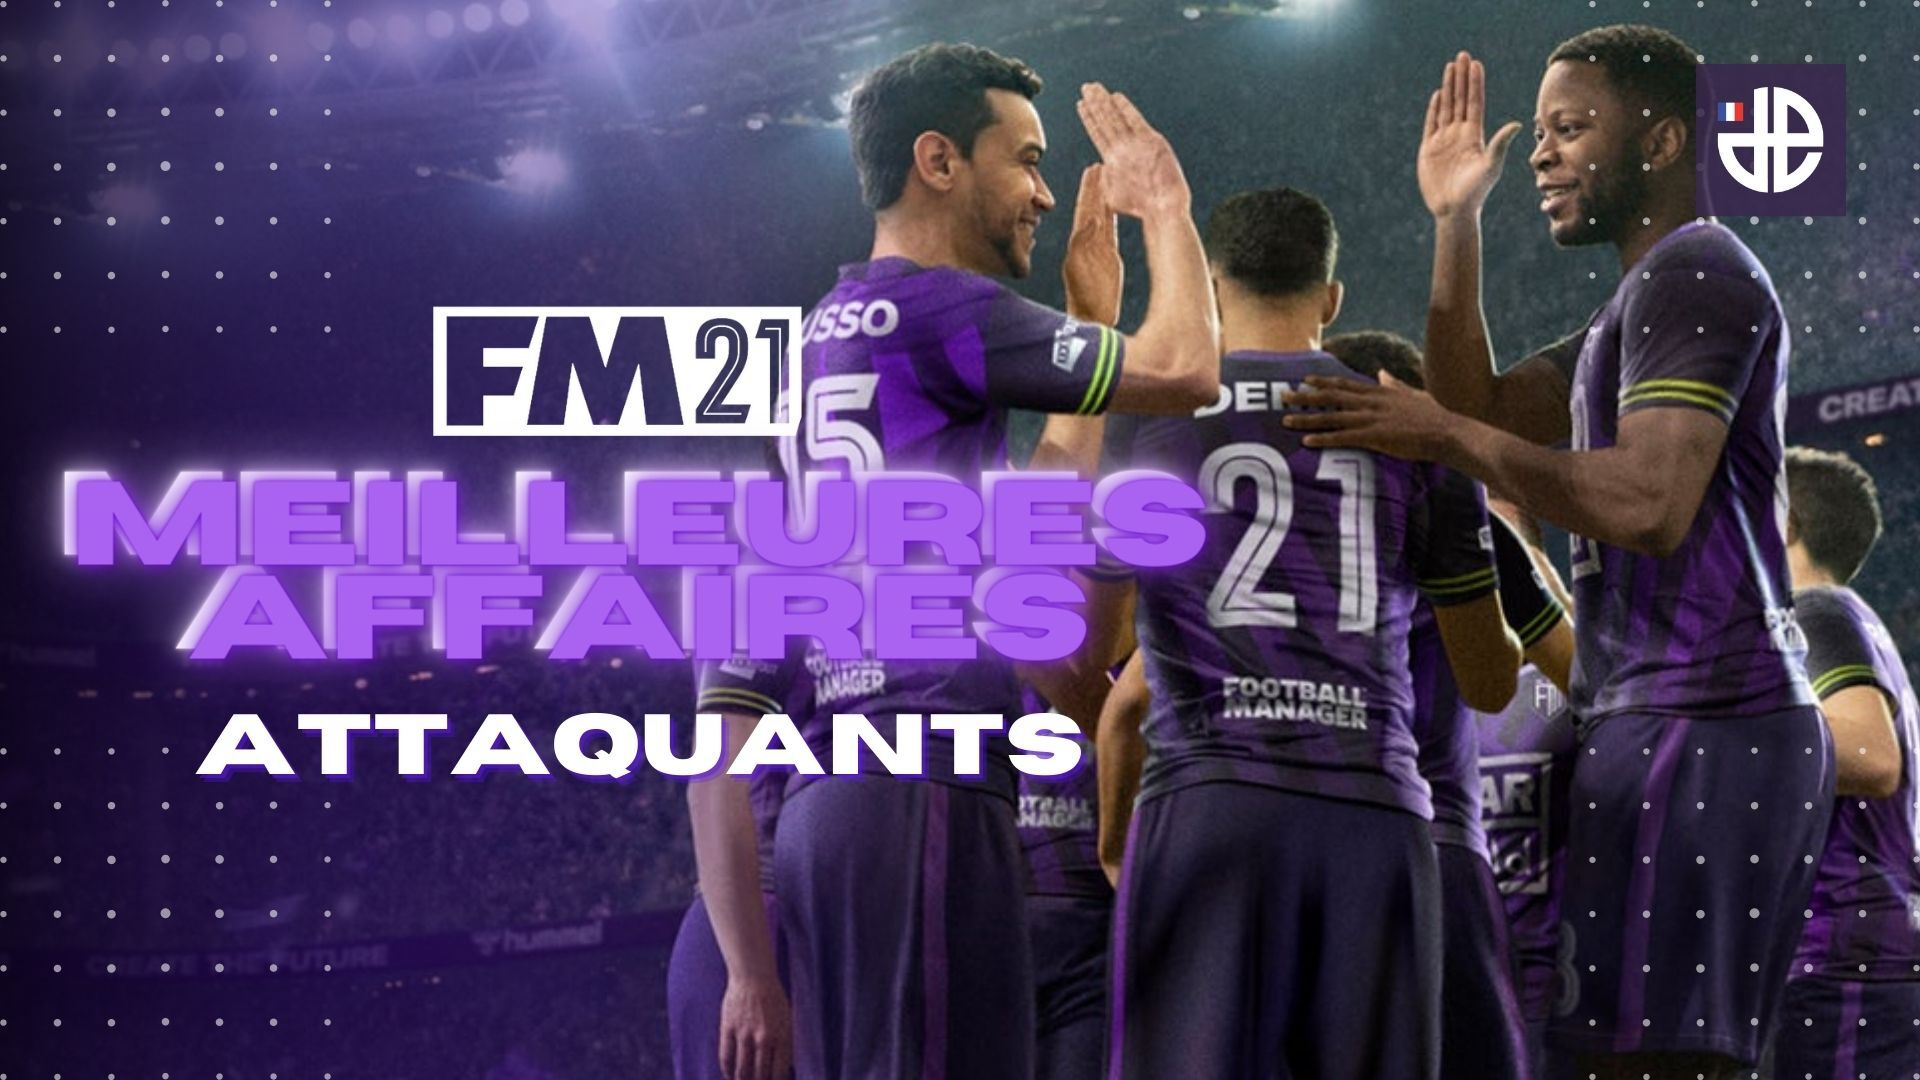 Football Manager 21 attaquants gargains